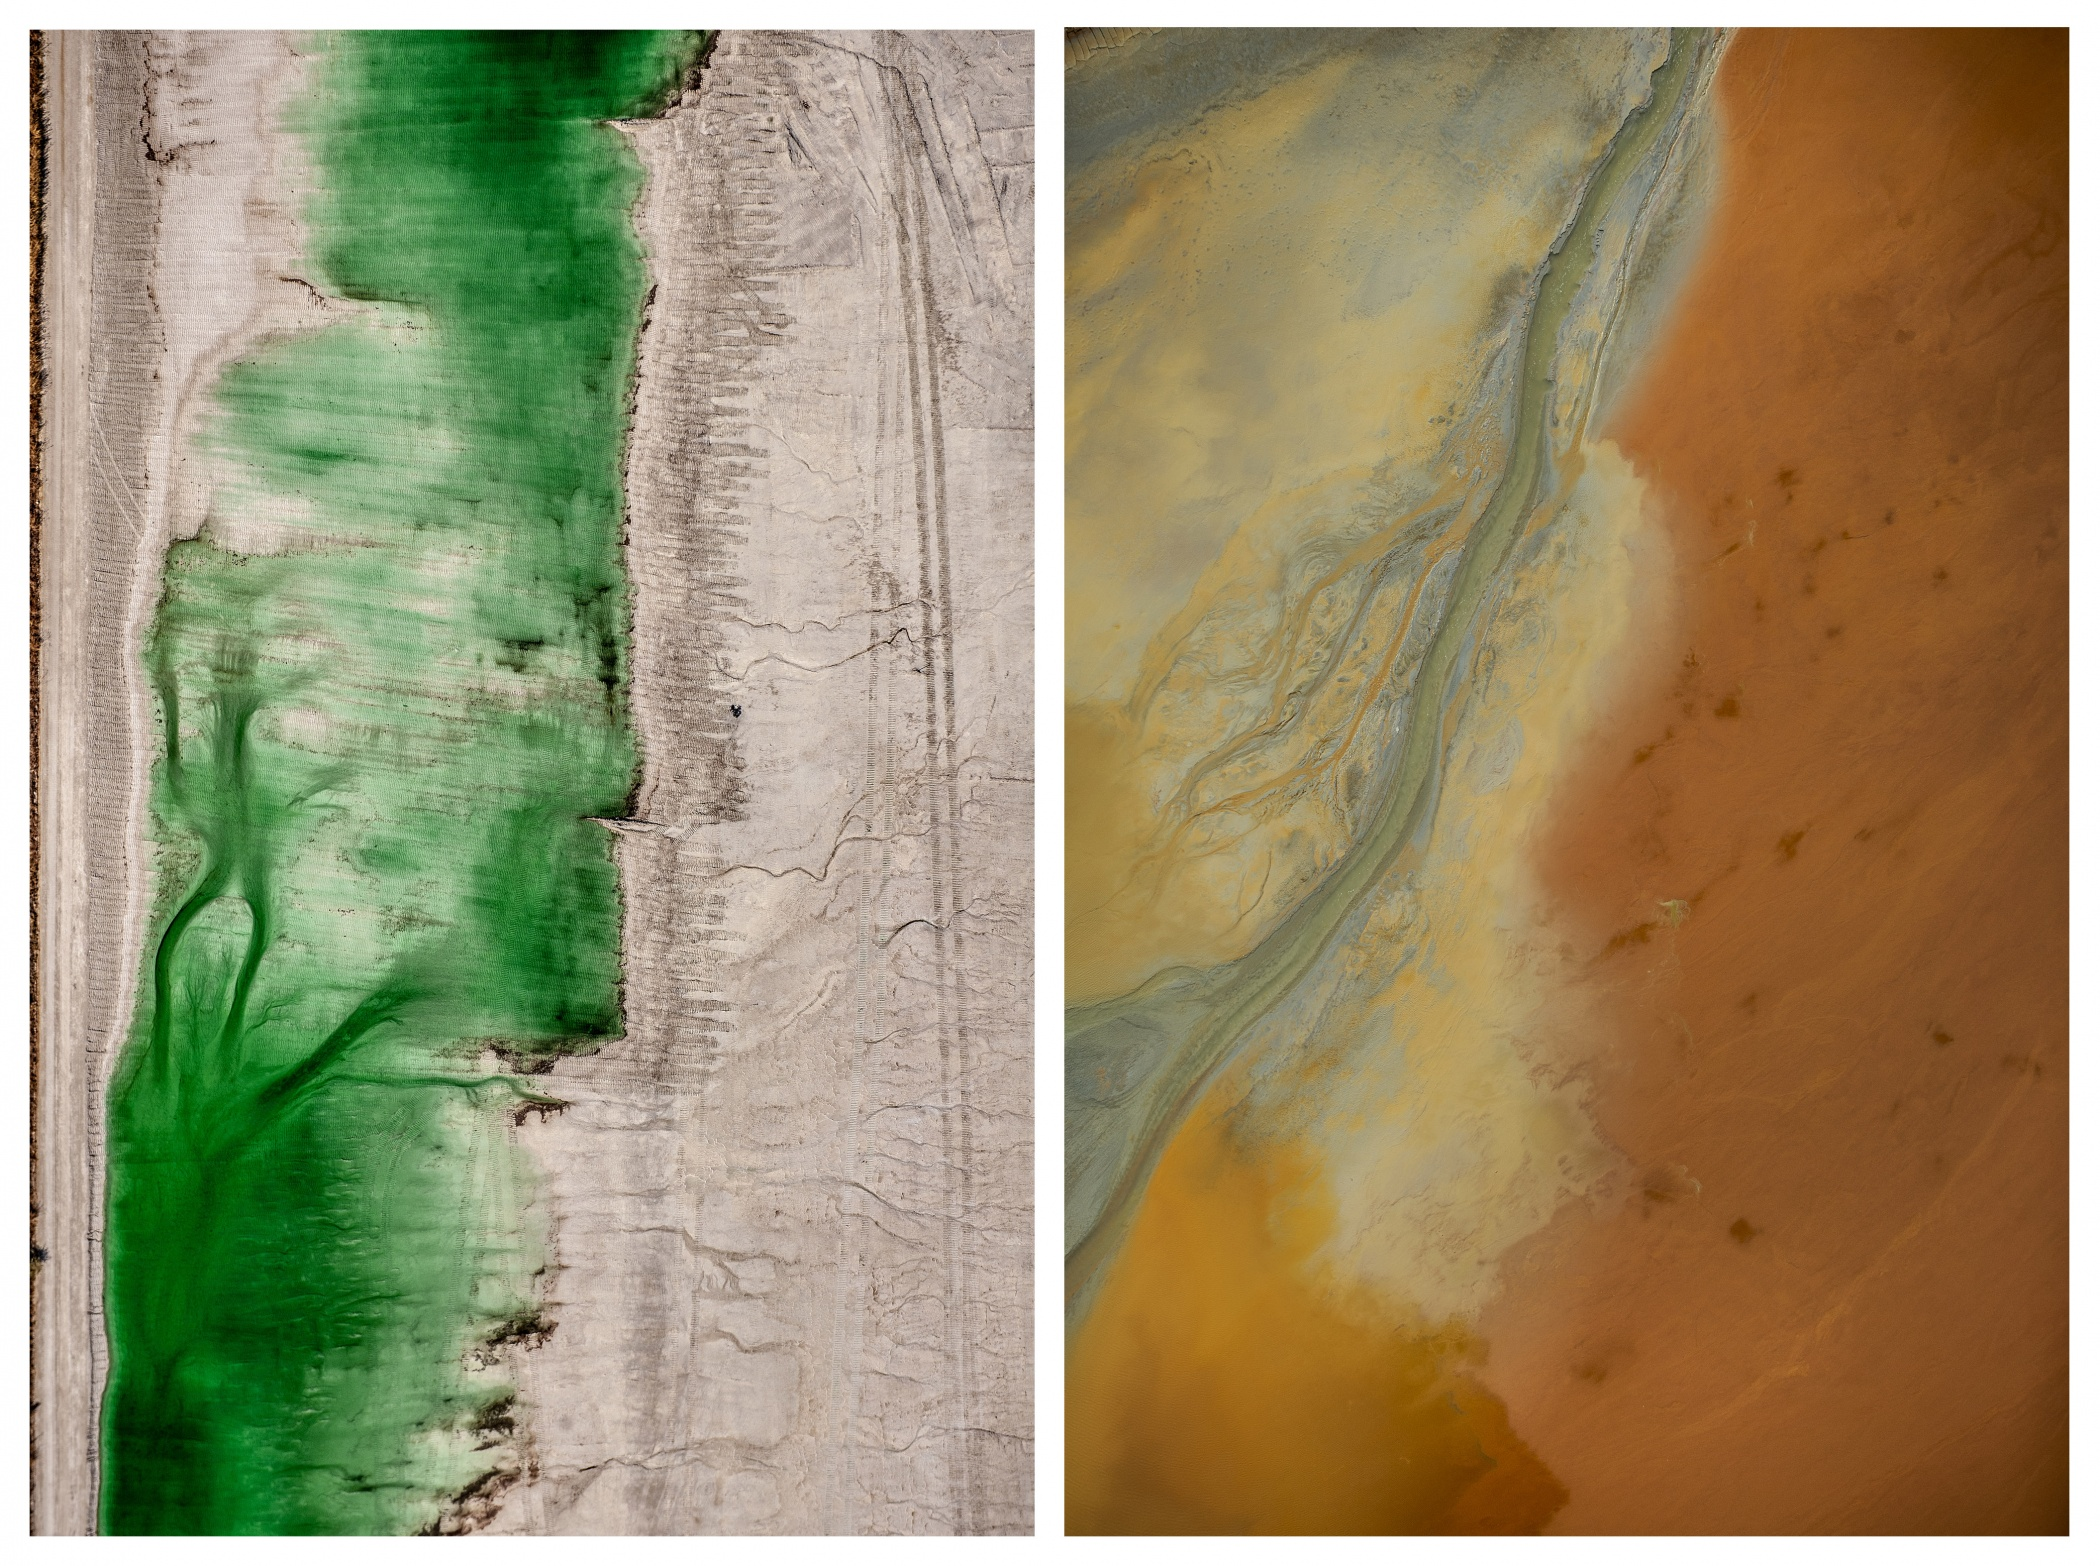 S9D - The end of the sky - Hector Garrido, Aerial and human photography